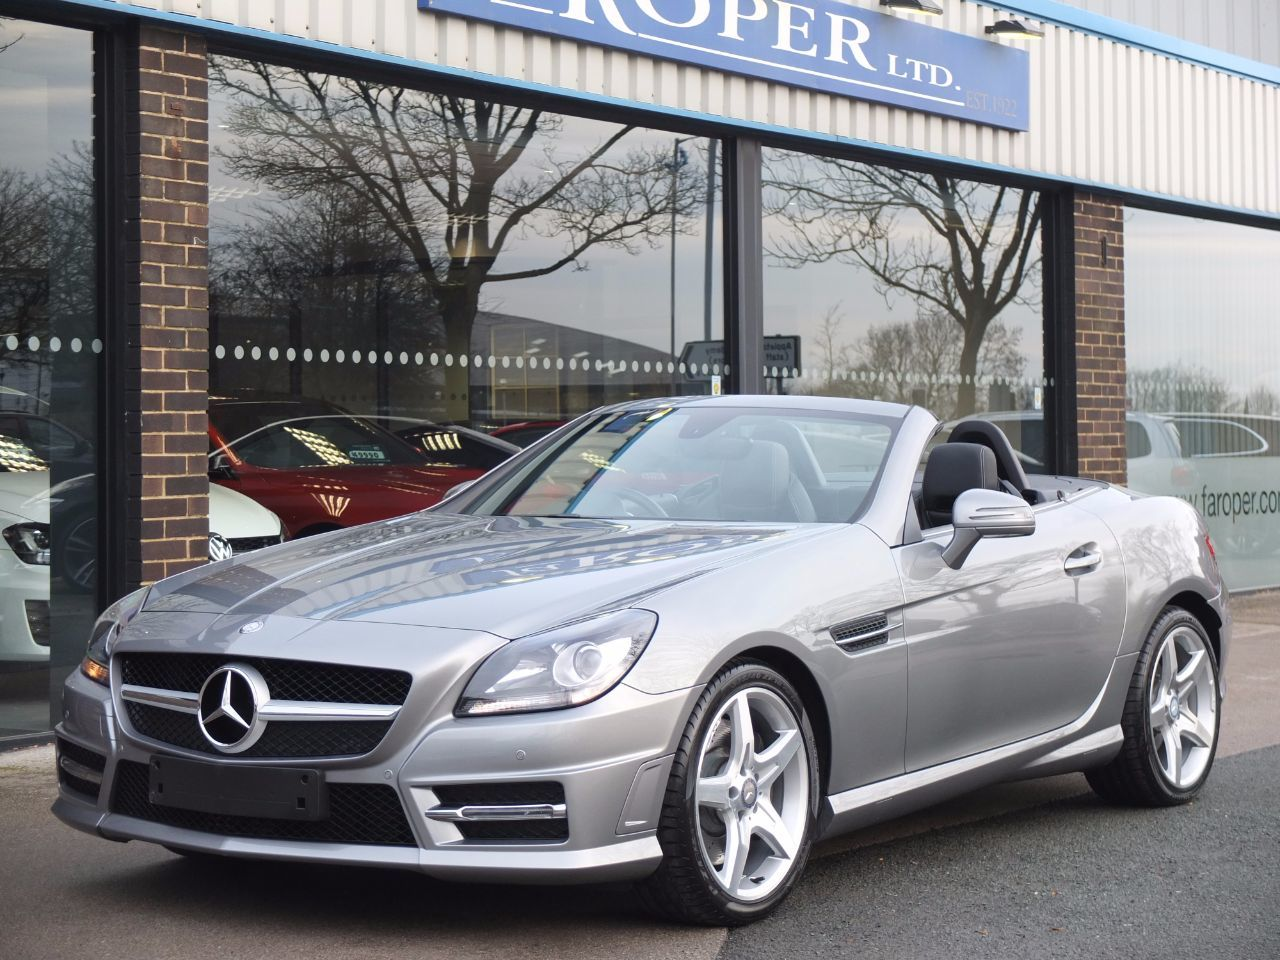 Mercedes-Benz SLK 2.1 SLK 250 CDI BlueEFFICIENCY AMG Sport Auto Convertible Diesel Palladium Silver MetallicMercedes-Benz SLK 2.1 SLK 250 CDI BlueEFFICIENCY AMG Sport Auto Convertible Diesel Palladium Silver Metallic at fa Roper Ltd Bradford